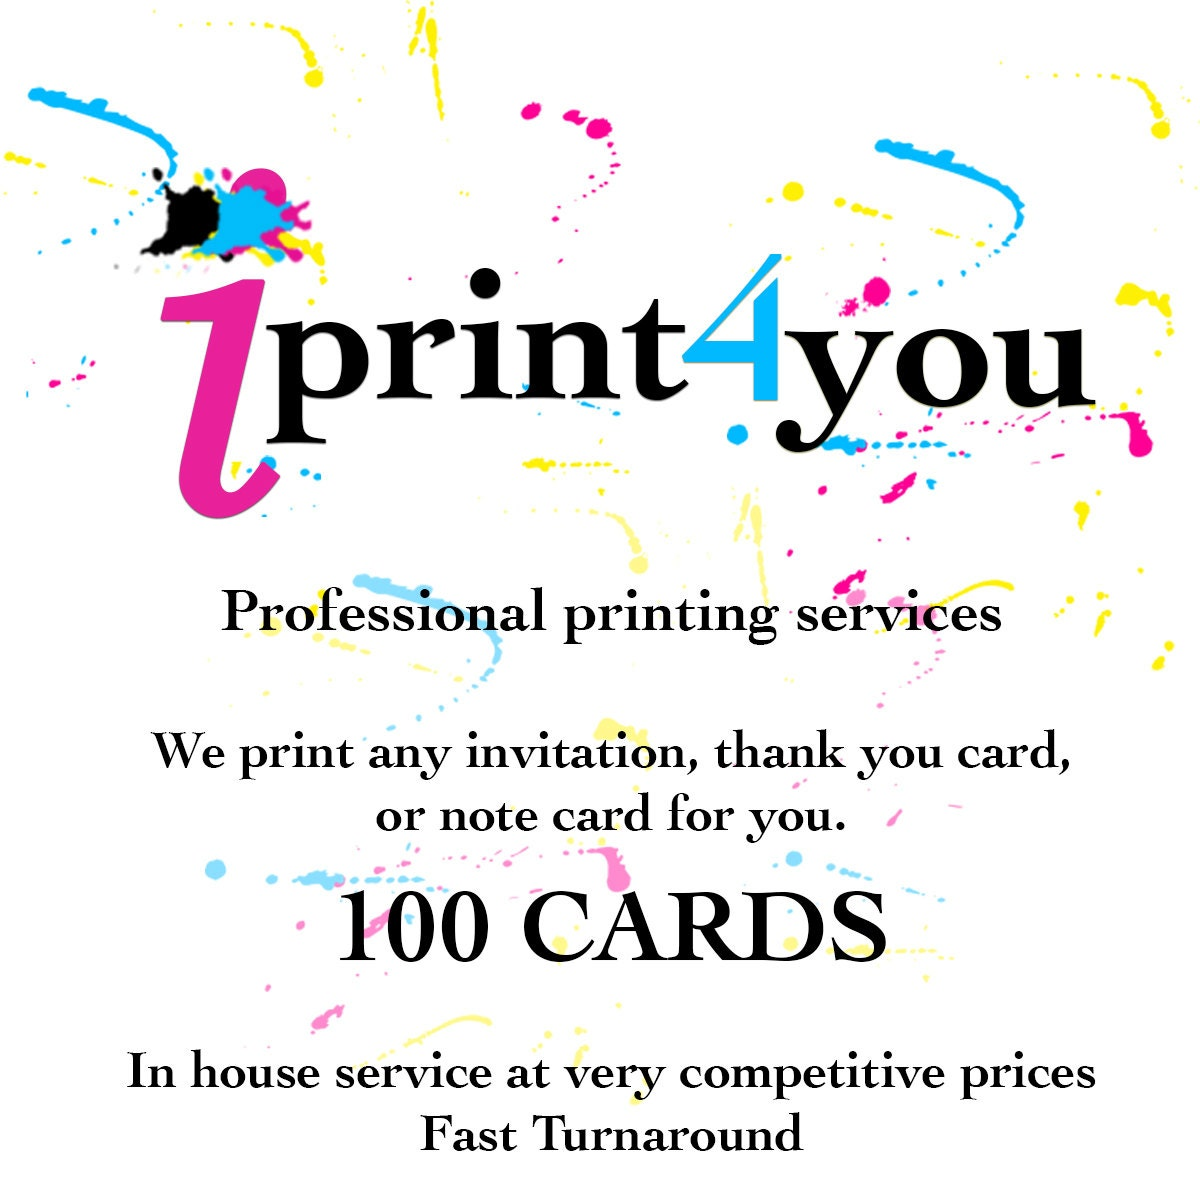 printing services professional printing services 5x7 invitations